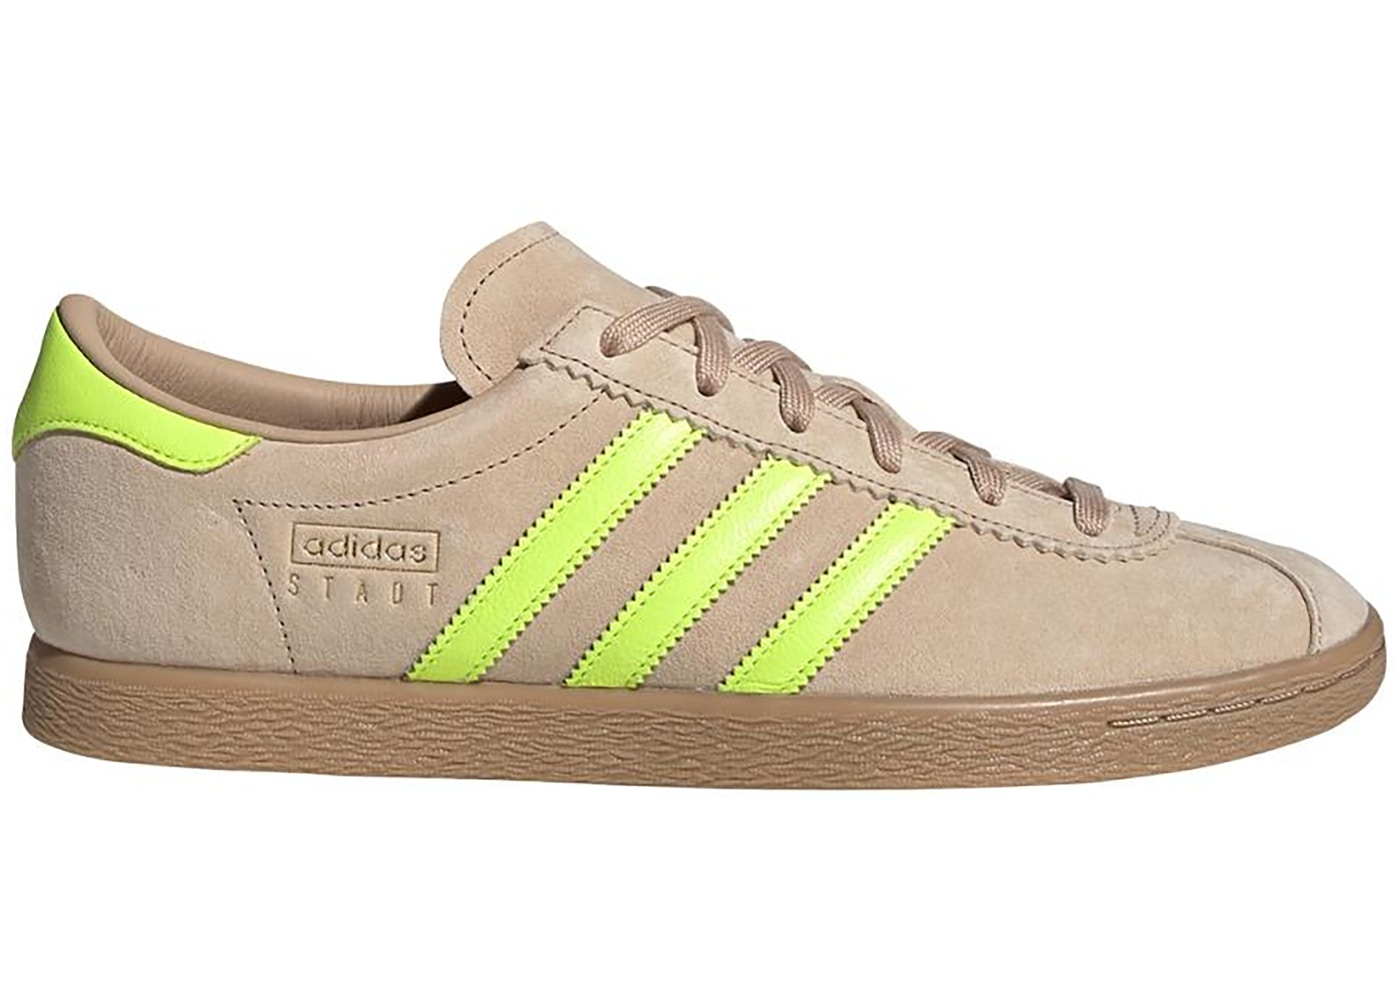 Buy Adidas Stadt st pale nude/solar yellow/gum 4 from £54